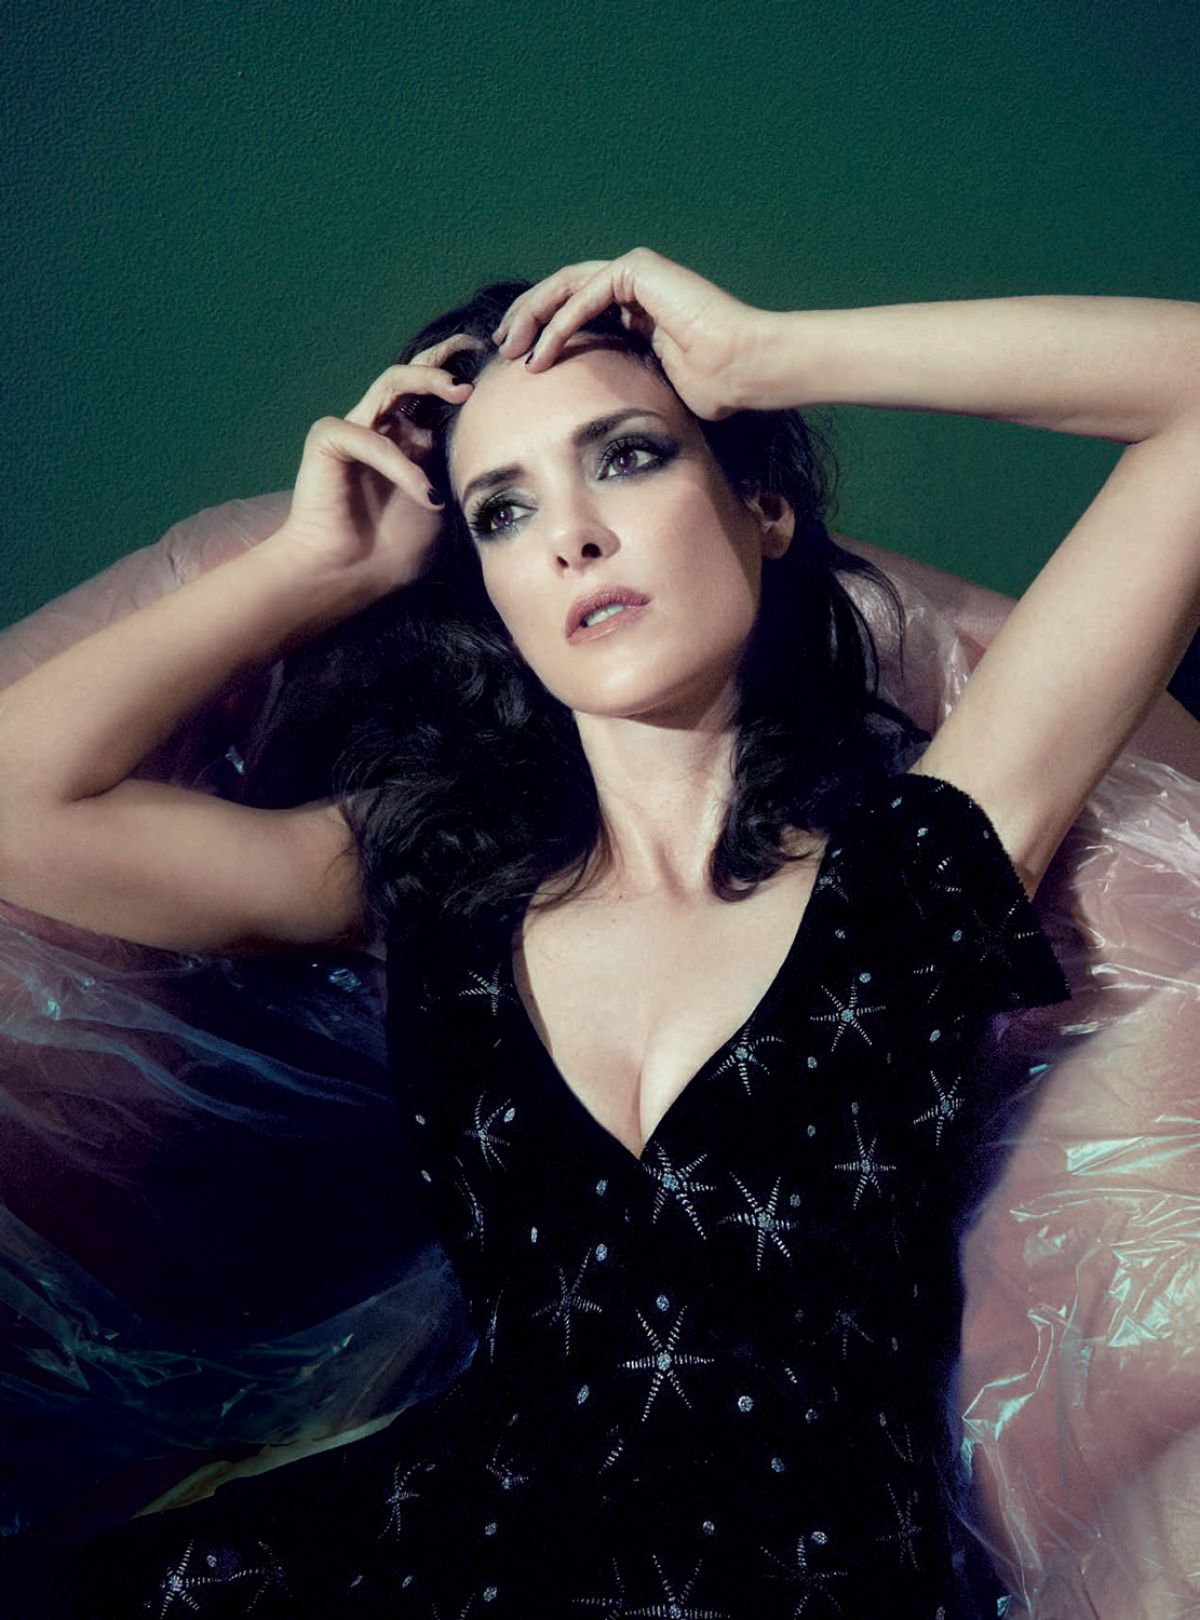 winona ryder - photo #11